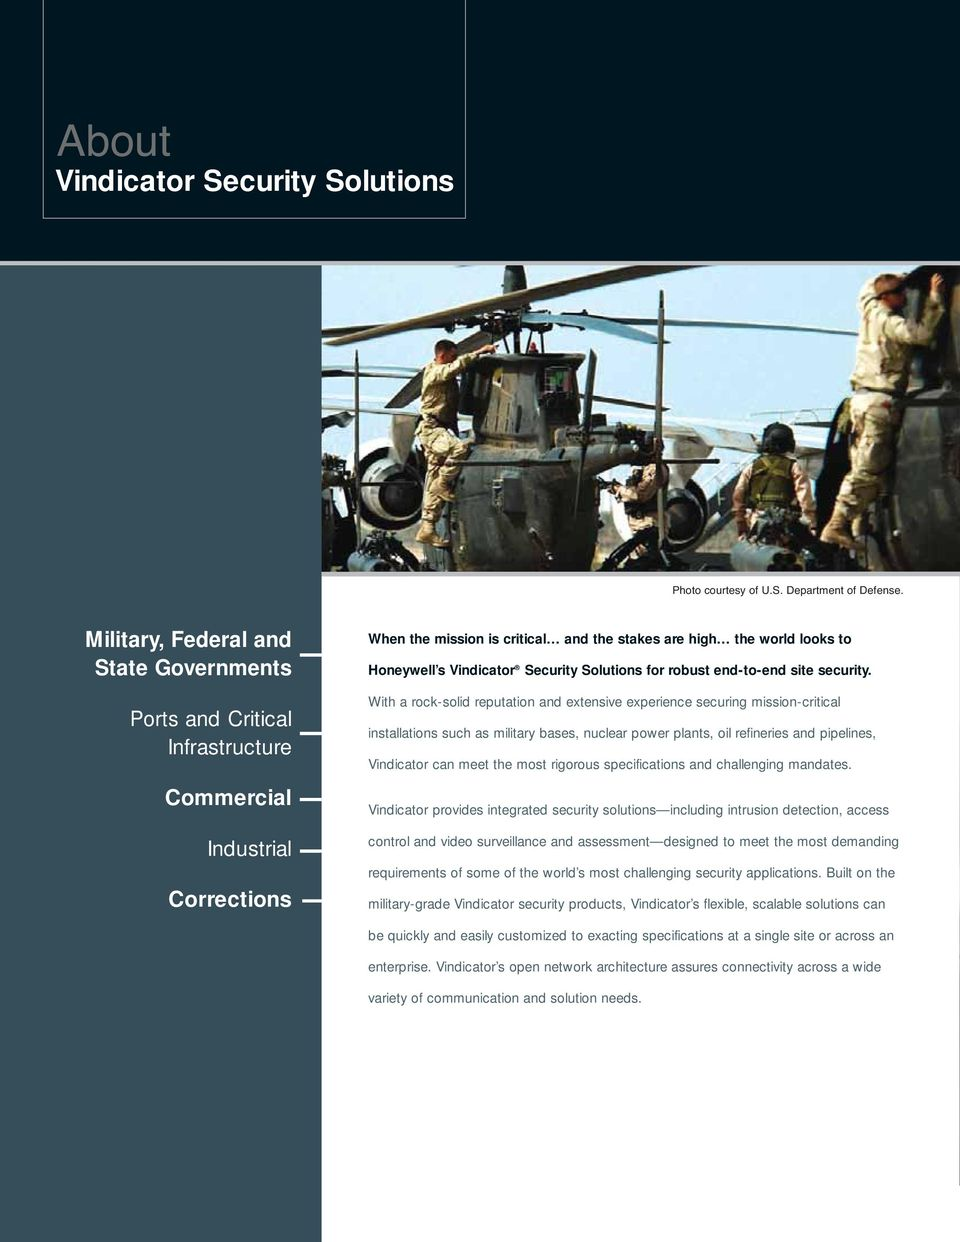 Vindicator Security Solutions for robust end-to-end site security.